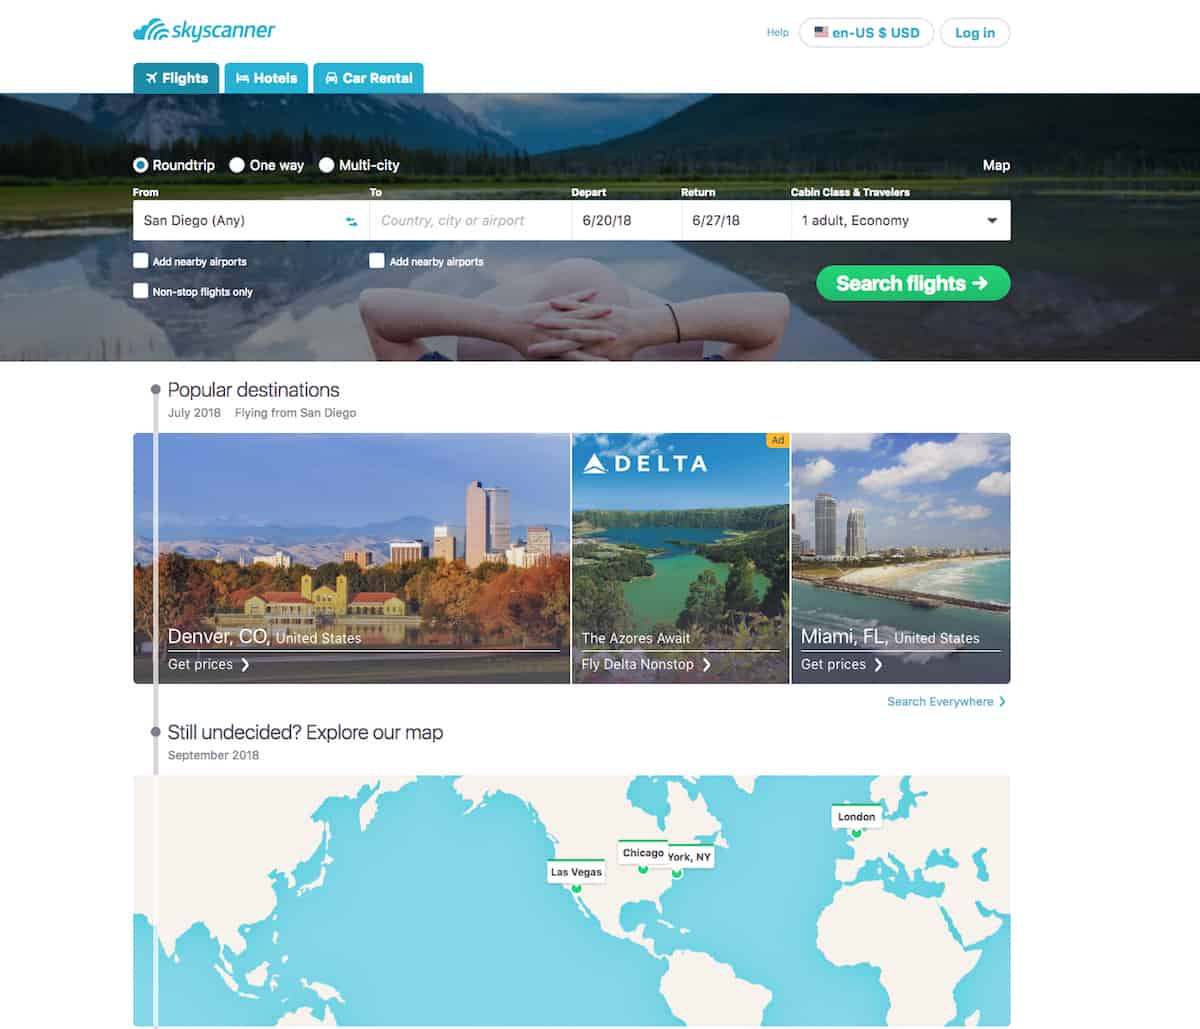 The SkyScanner website lets you search for the lowest priced airline tickets.